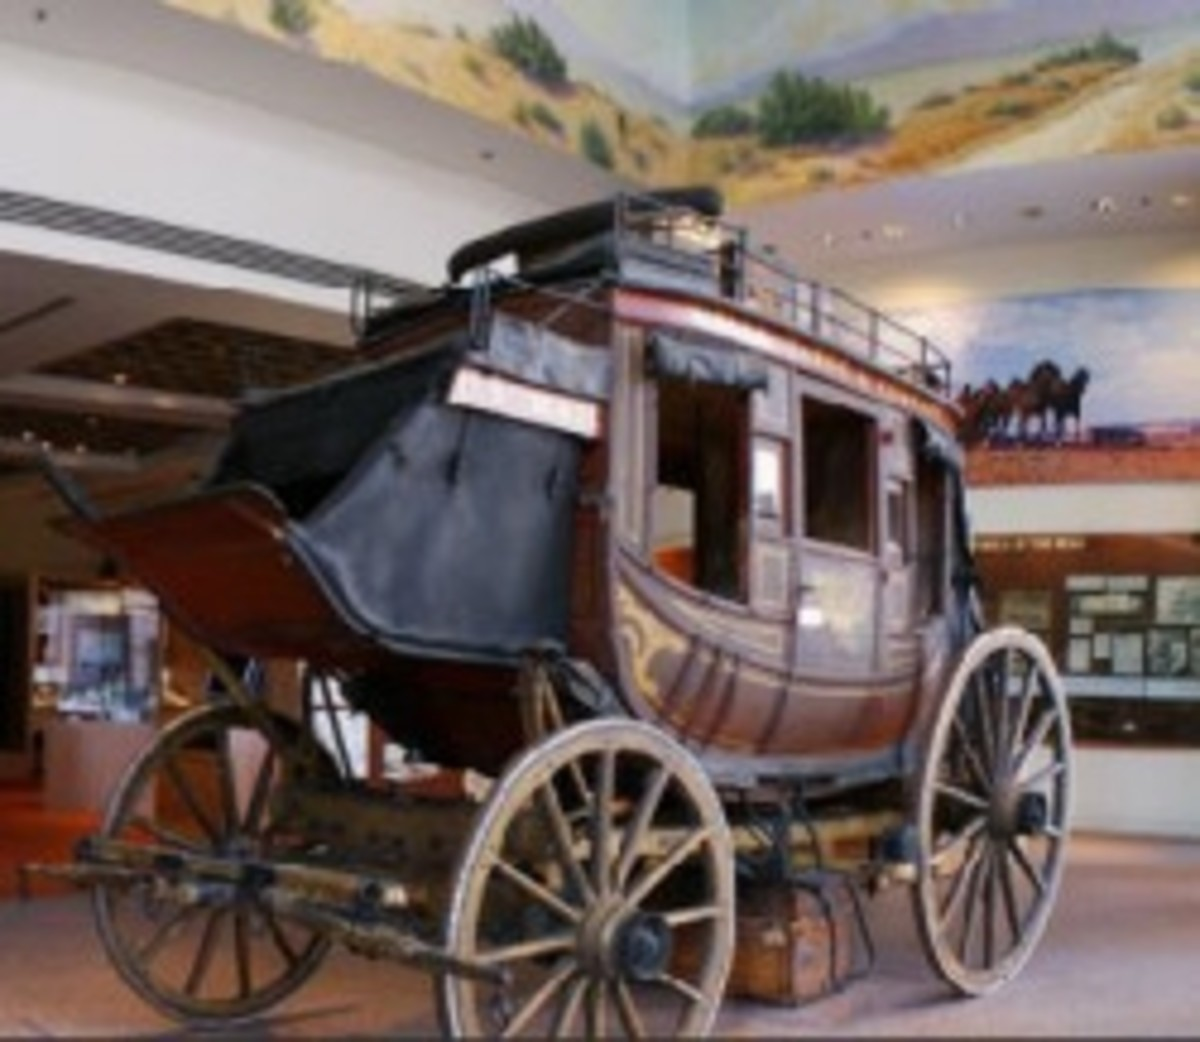 Another glimpse into American history, from the Wells Fargo Museum in Los Angeles, CA.